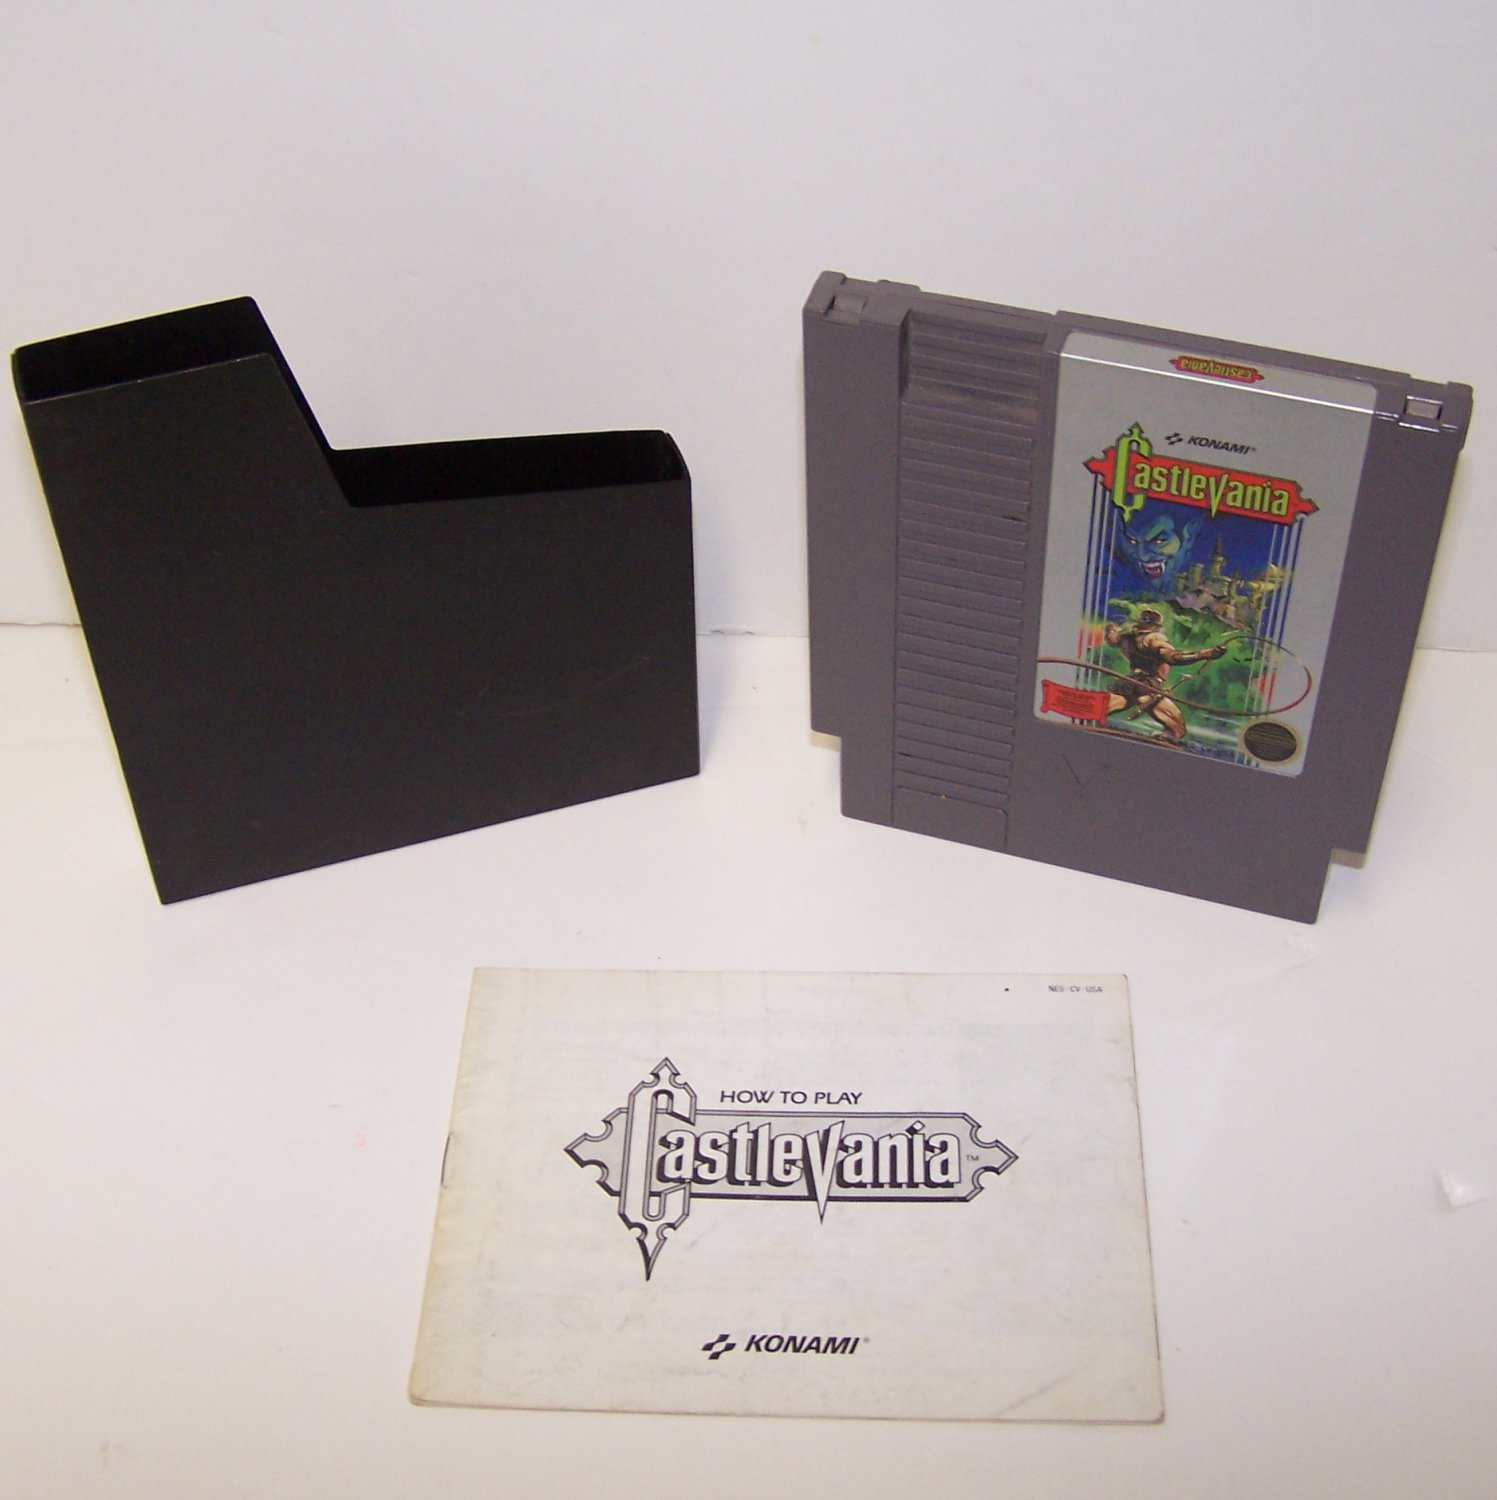 Castlevania ~ Original 8-bit Nintendo NES Game Cartridge and Instruction Manual